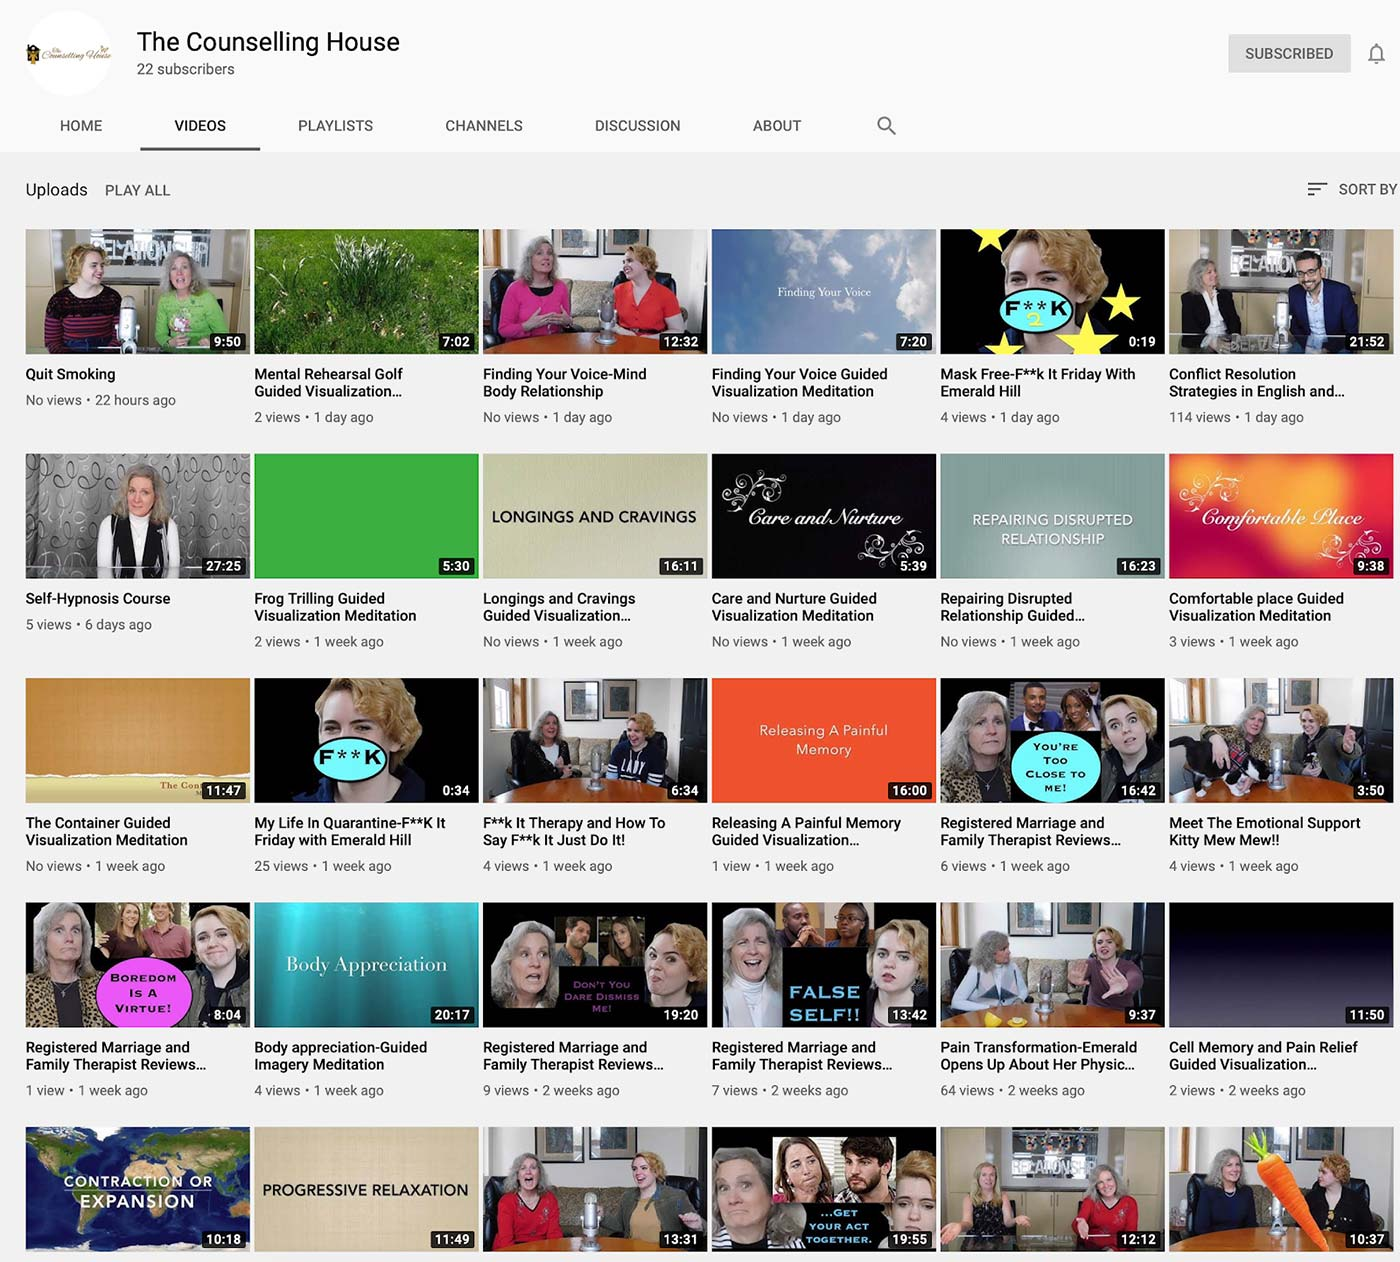 The Counselling House Youtube Channel